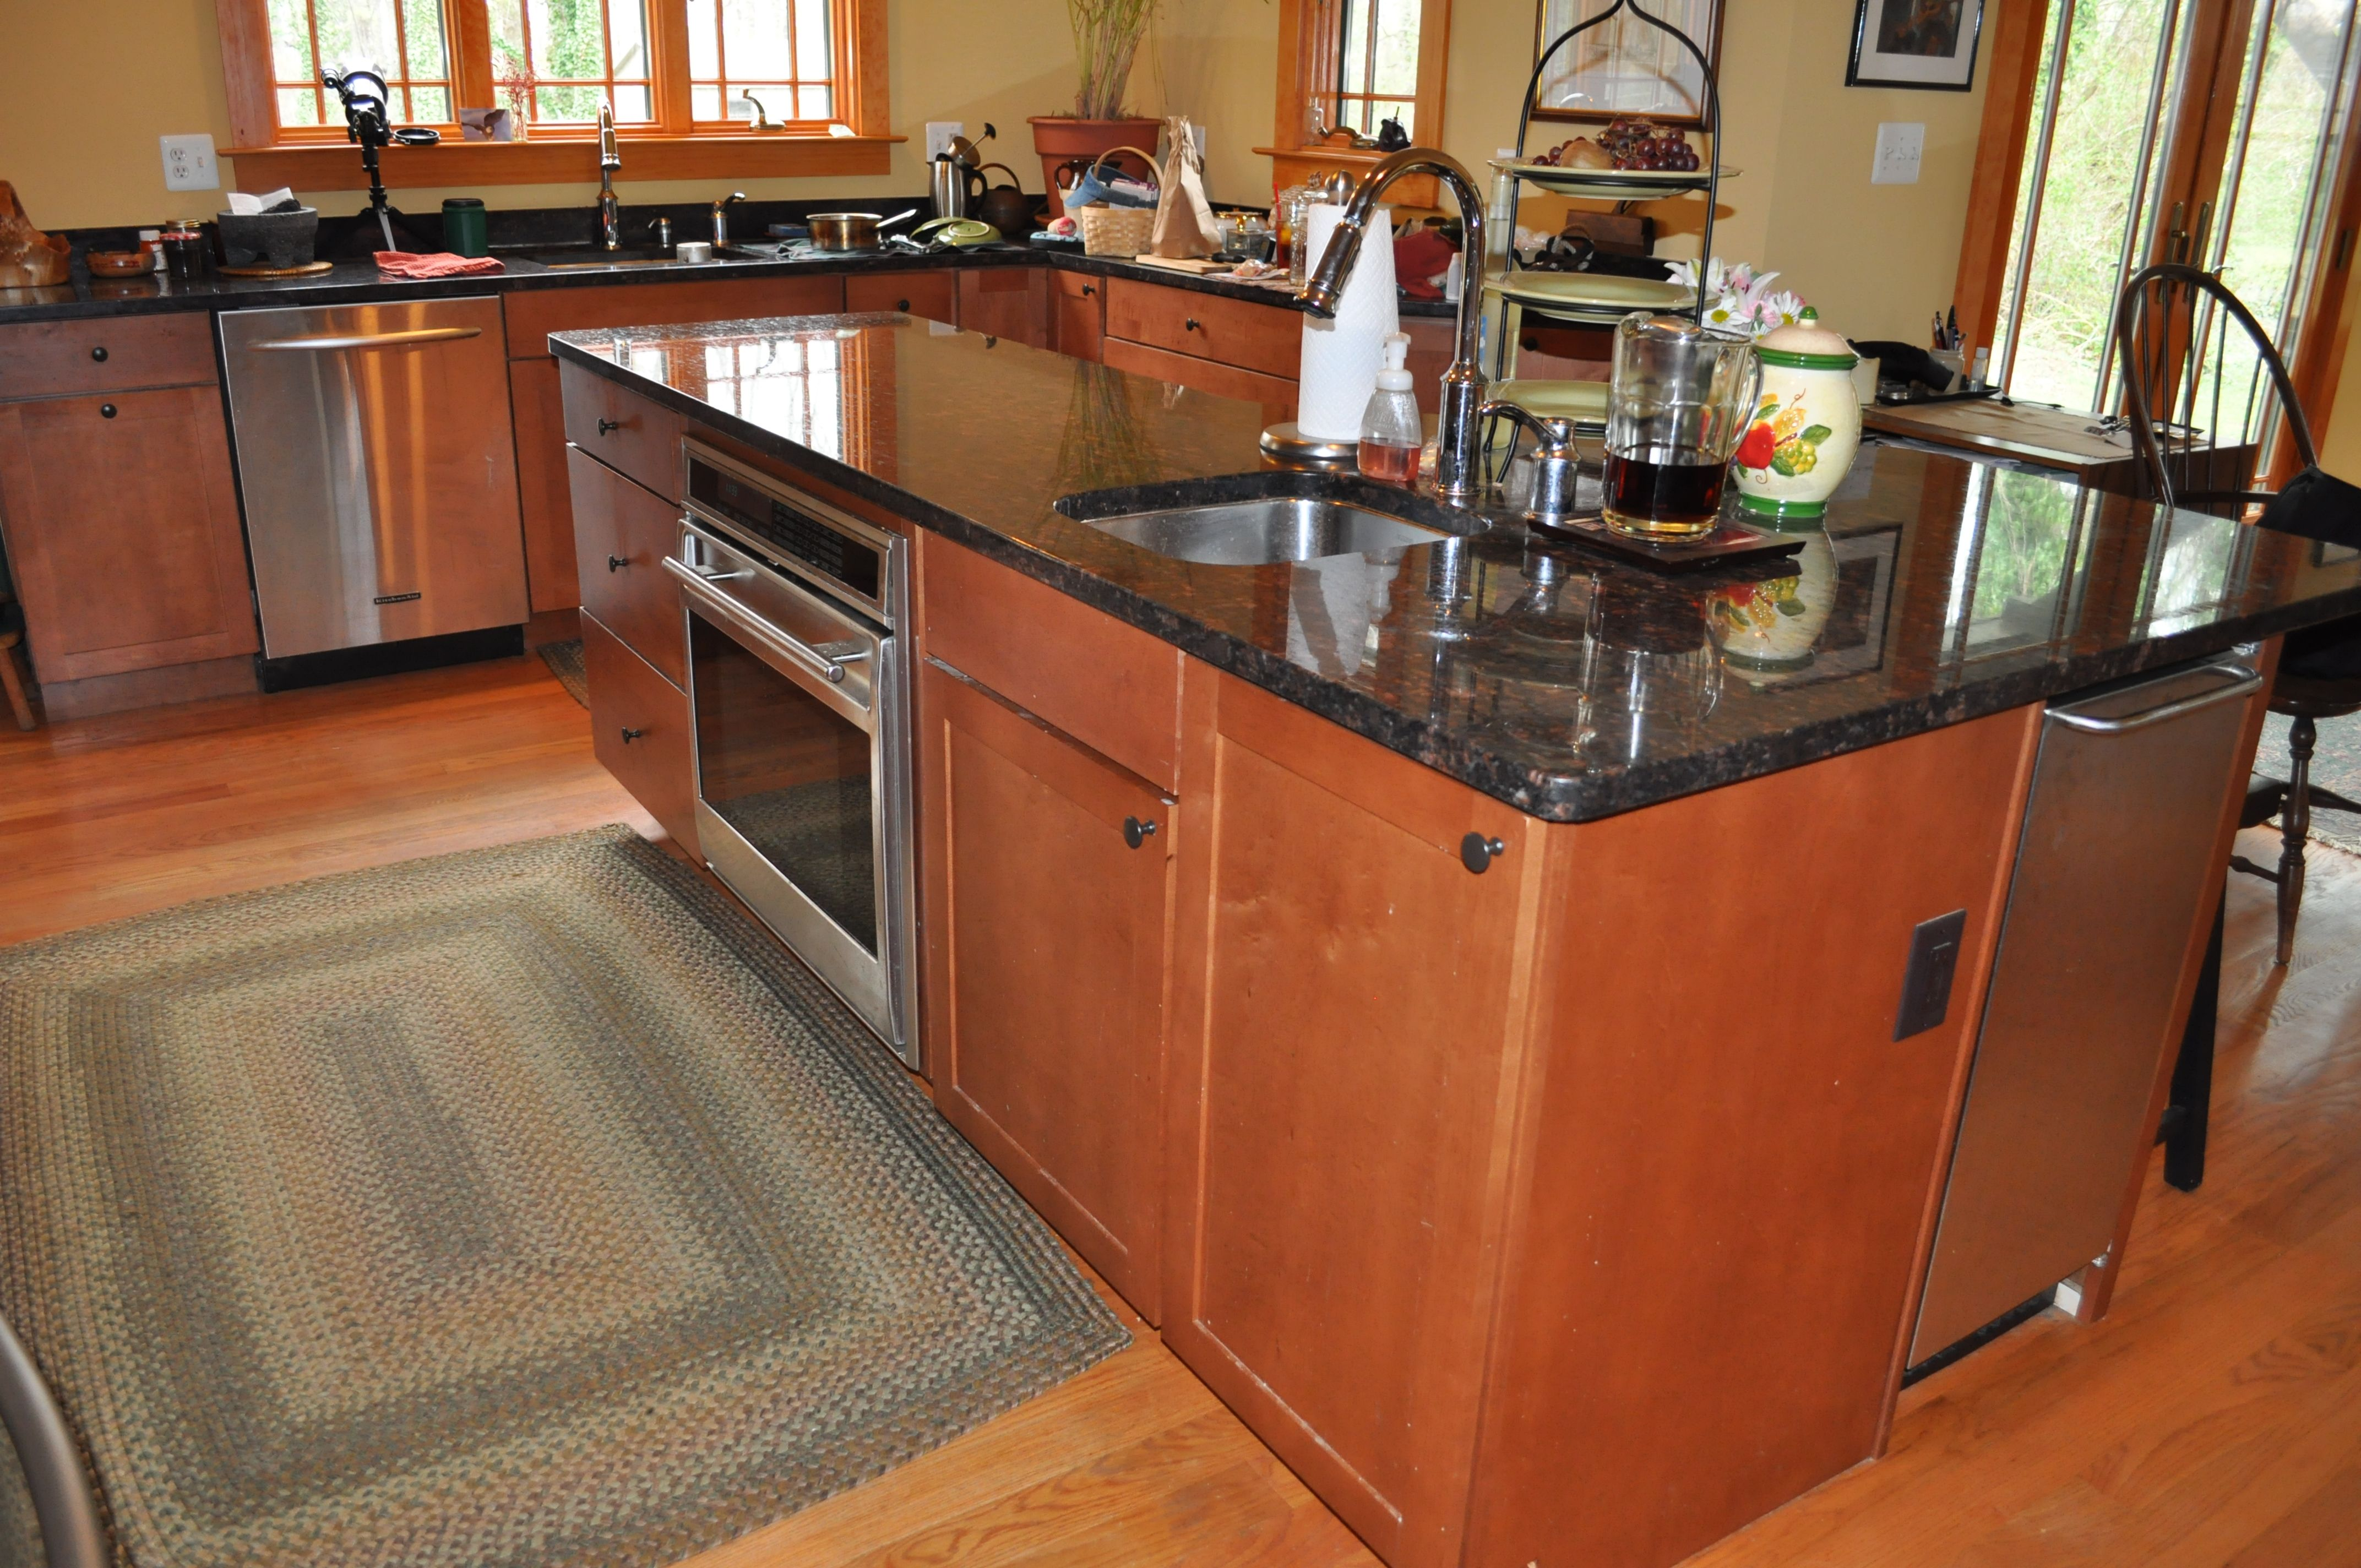 Kitchens With Under And Over Counter Appliances Maple Cabinets With Quartz Counter Tops Stainless Steel Appliances With Images Kitchen Remodel Kitchen Remodel